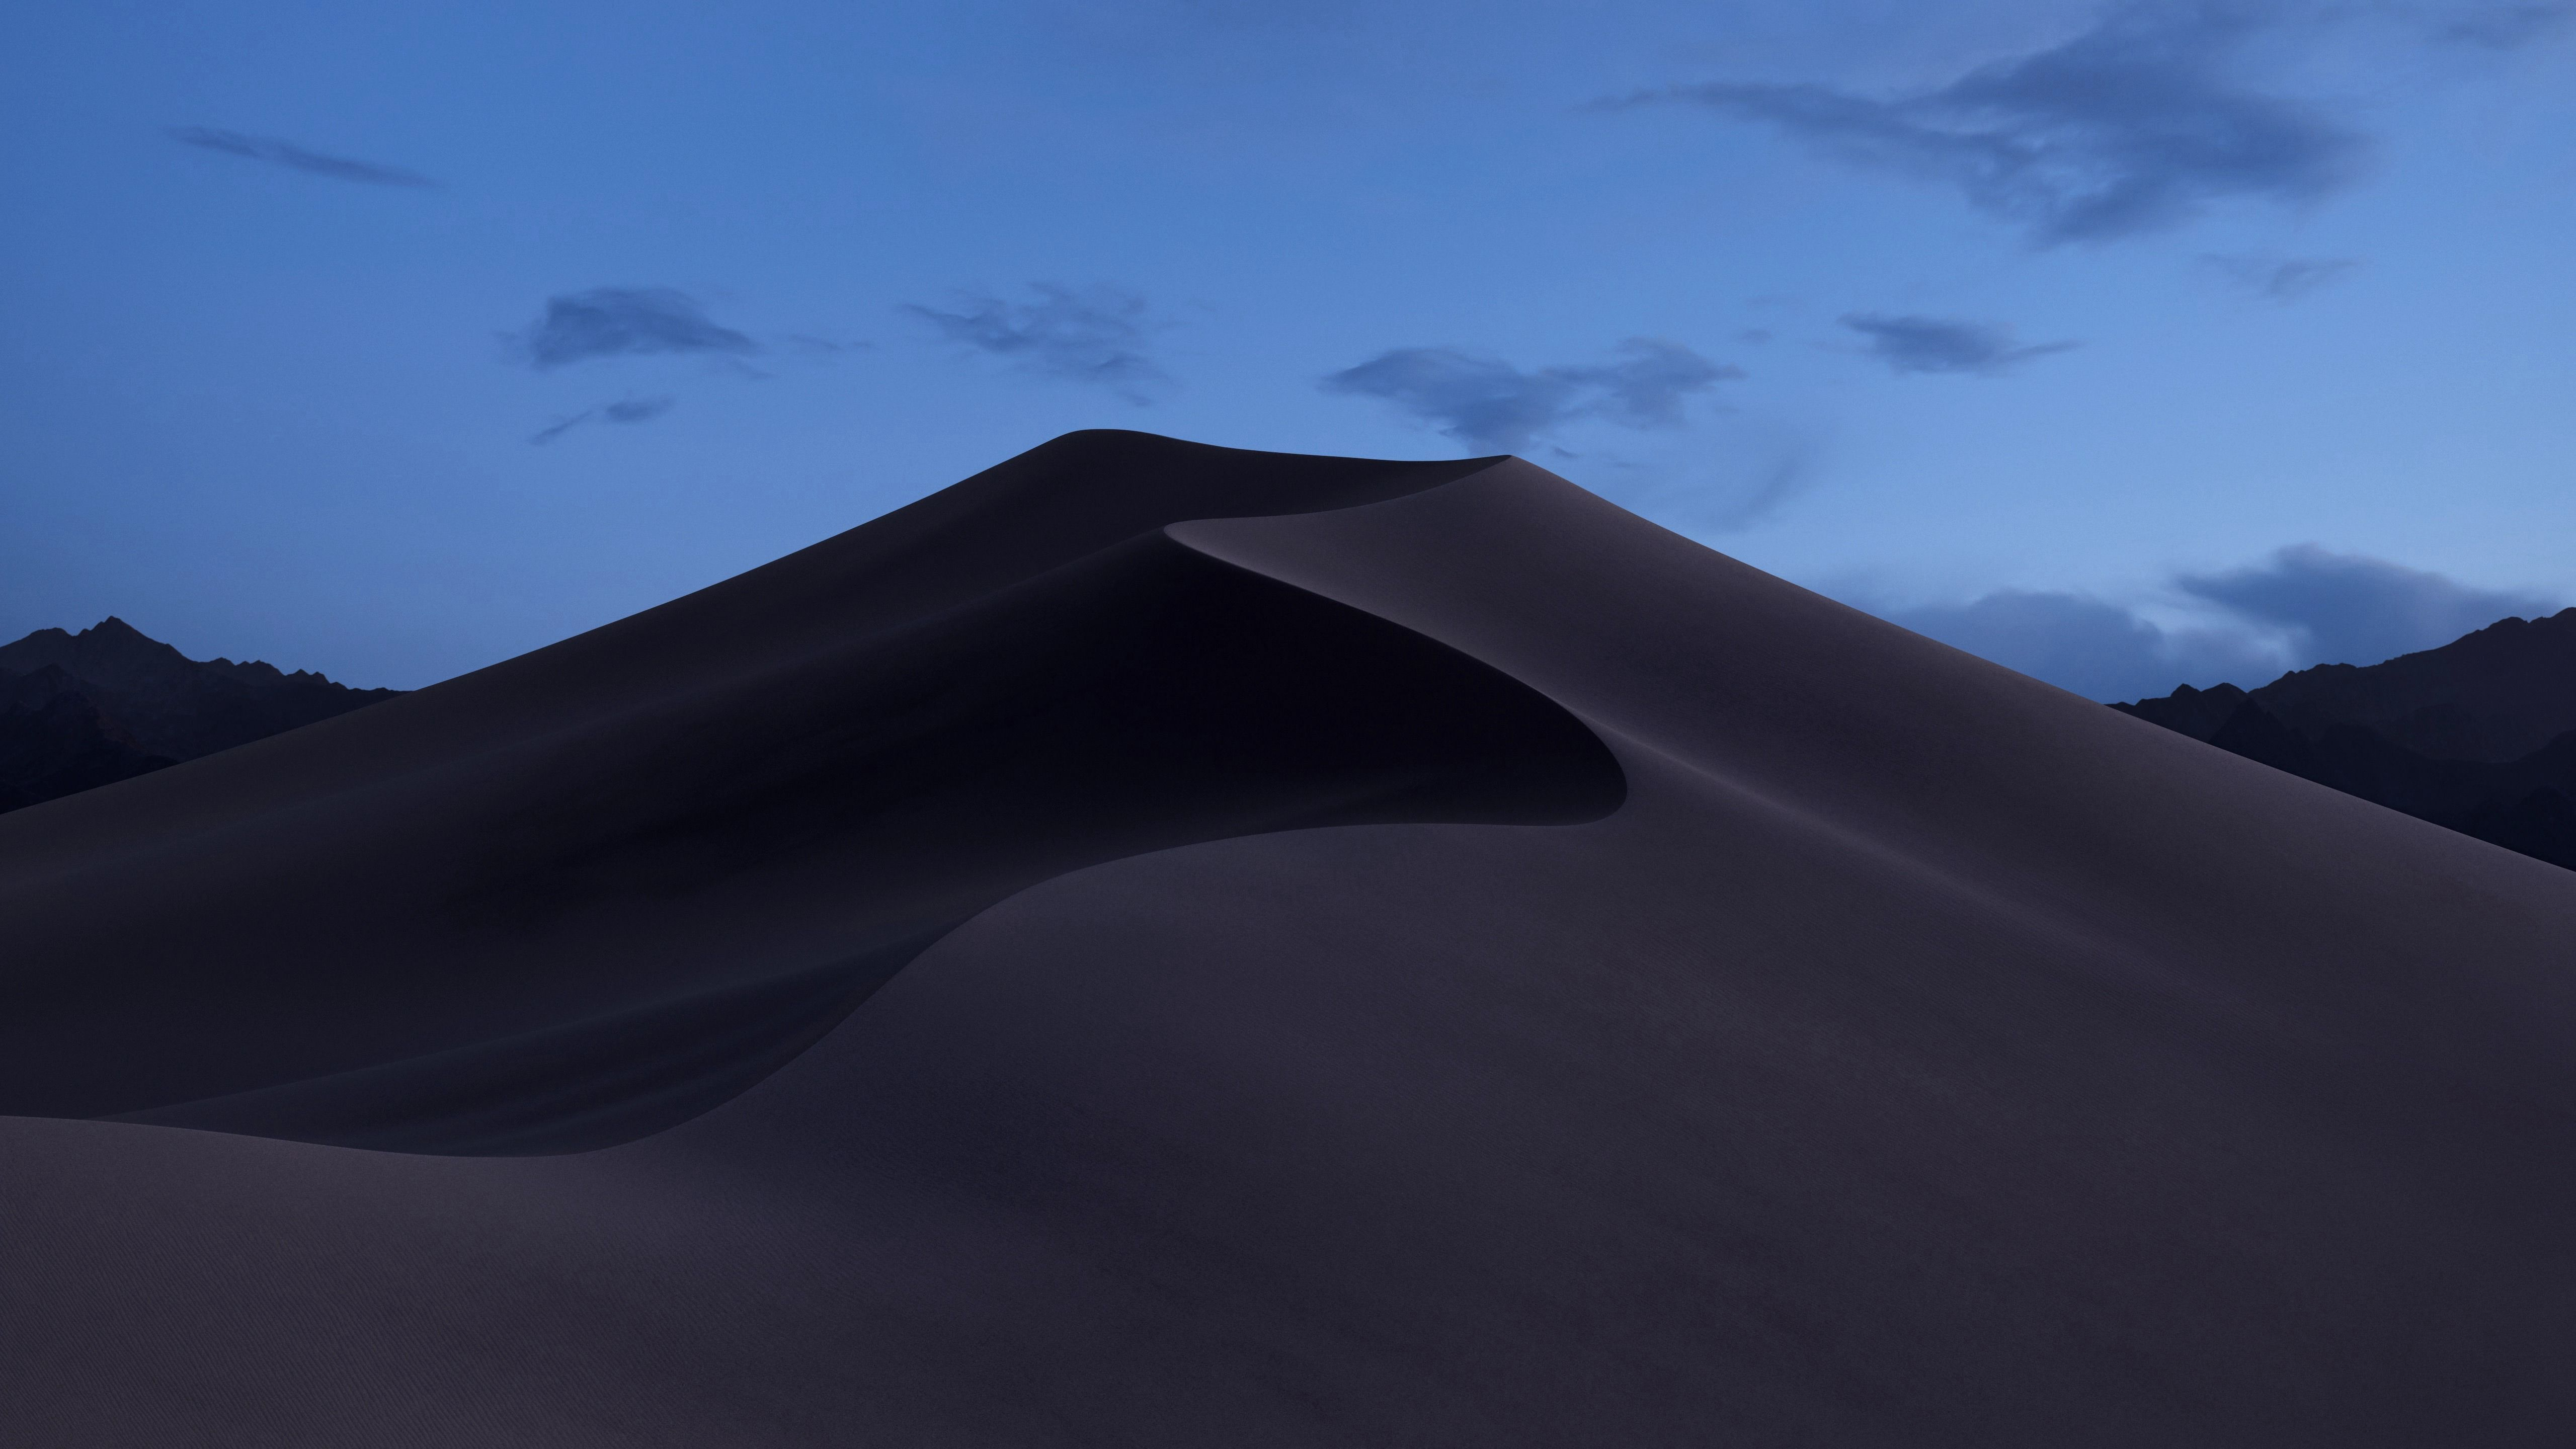 How To Install The Macos Mojave Dynamic Wallpaper Ahead Mac Os Mojave Dynamic Is Hd Wallpapers Backgrounds Fo Mojave Wallpaper Backgrounds Mac Os Wallpaper